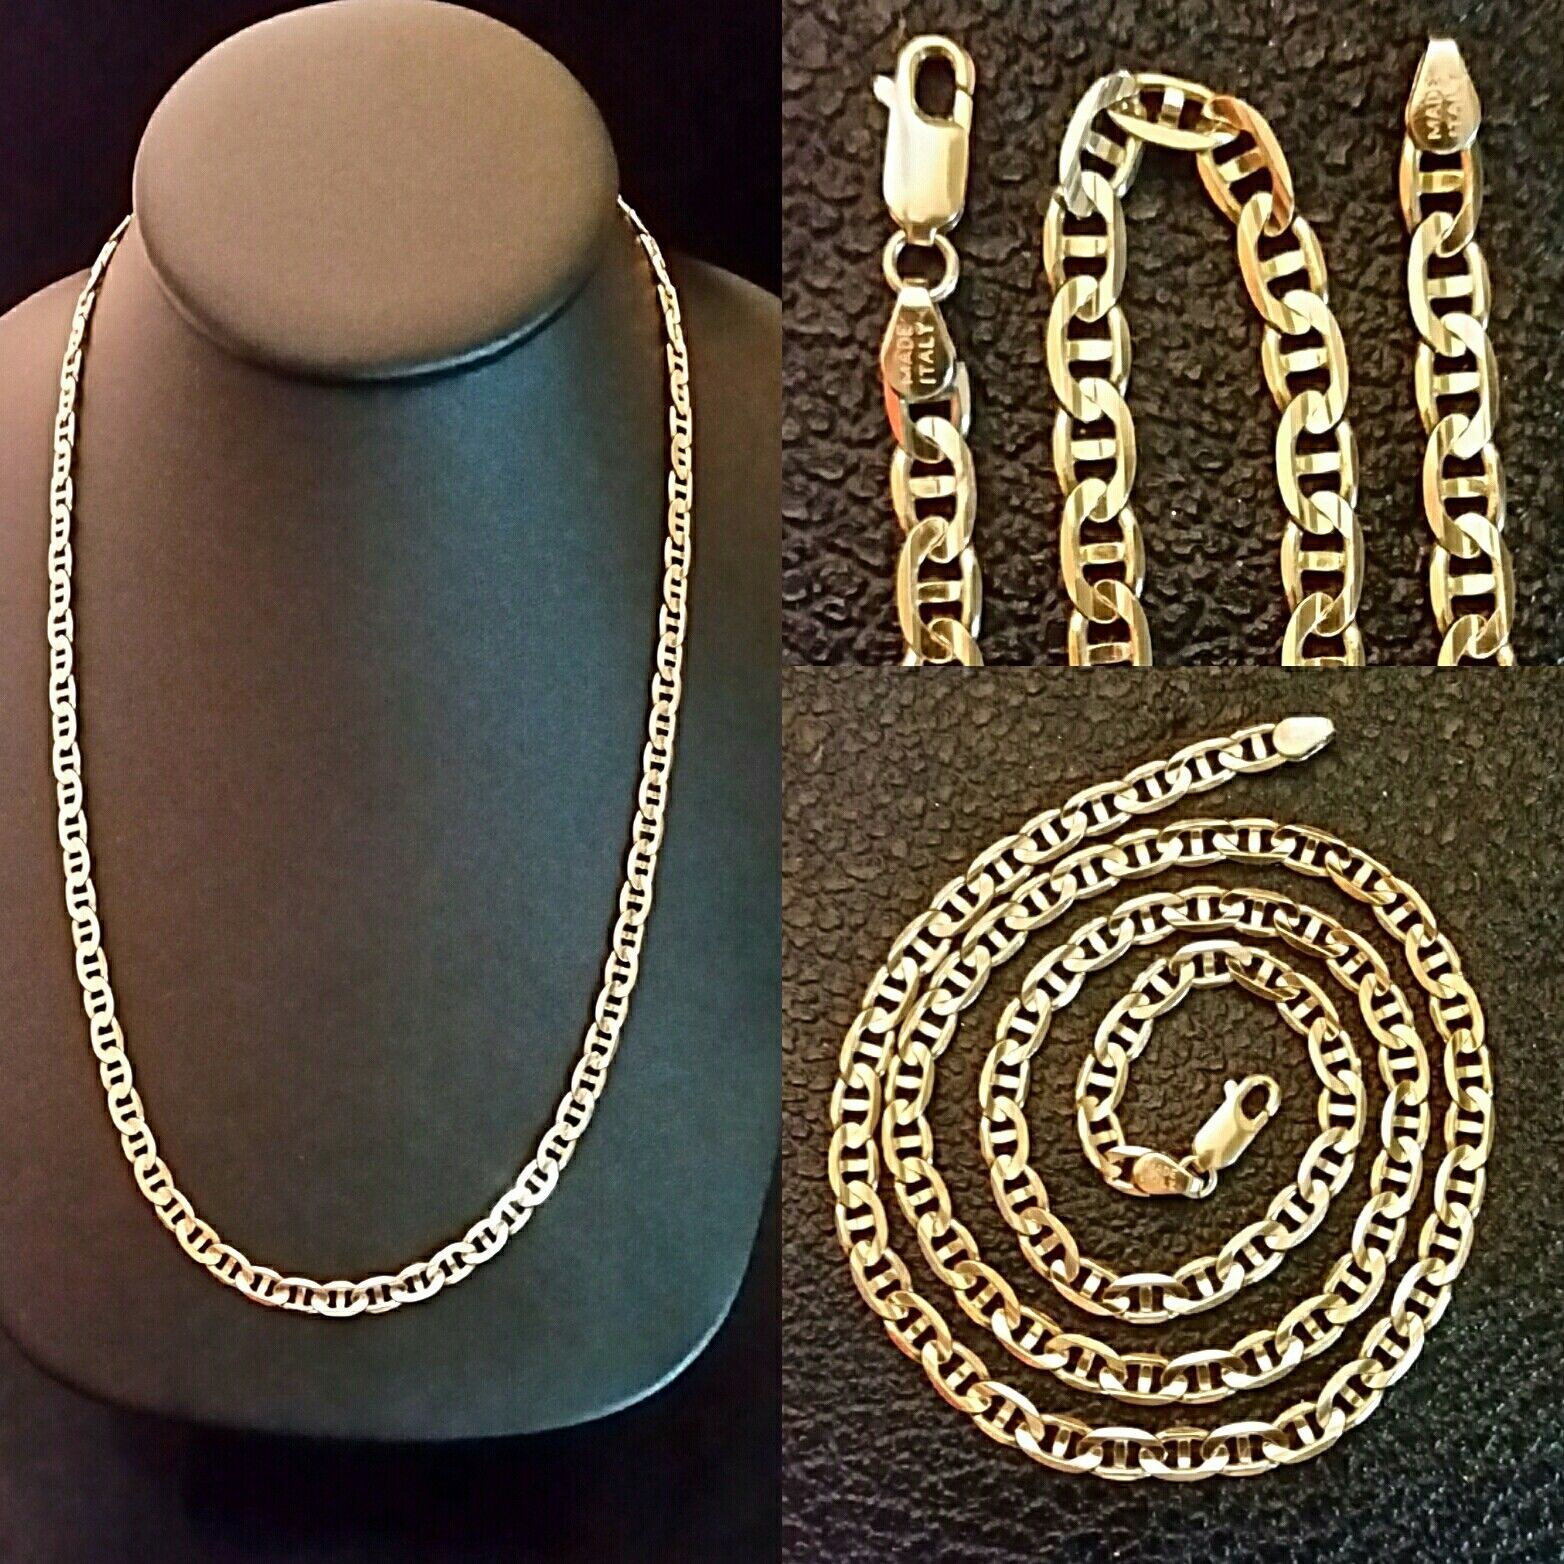 b000a30ee9d6e 14k Gold Chain Necklace GUCCI MARINER Link SOLID GOLD 20.4